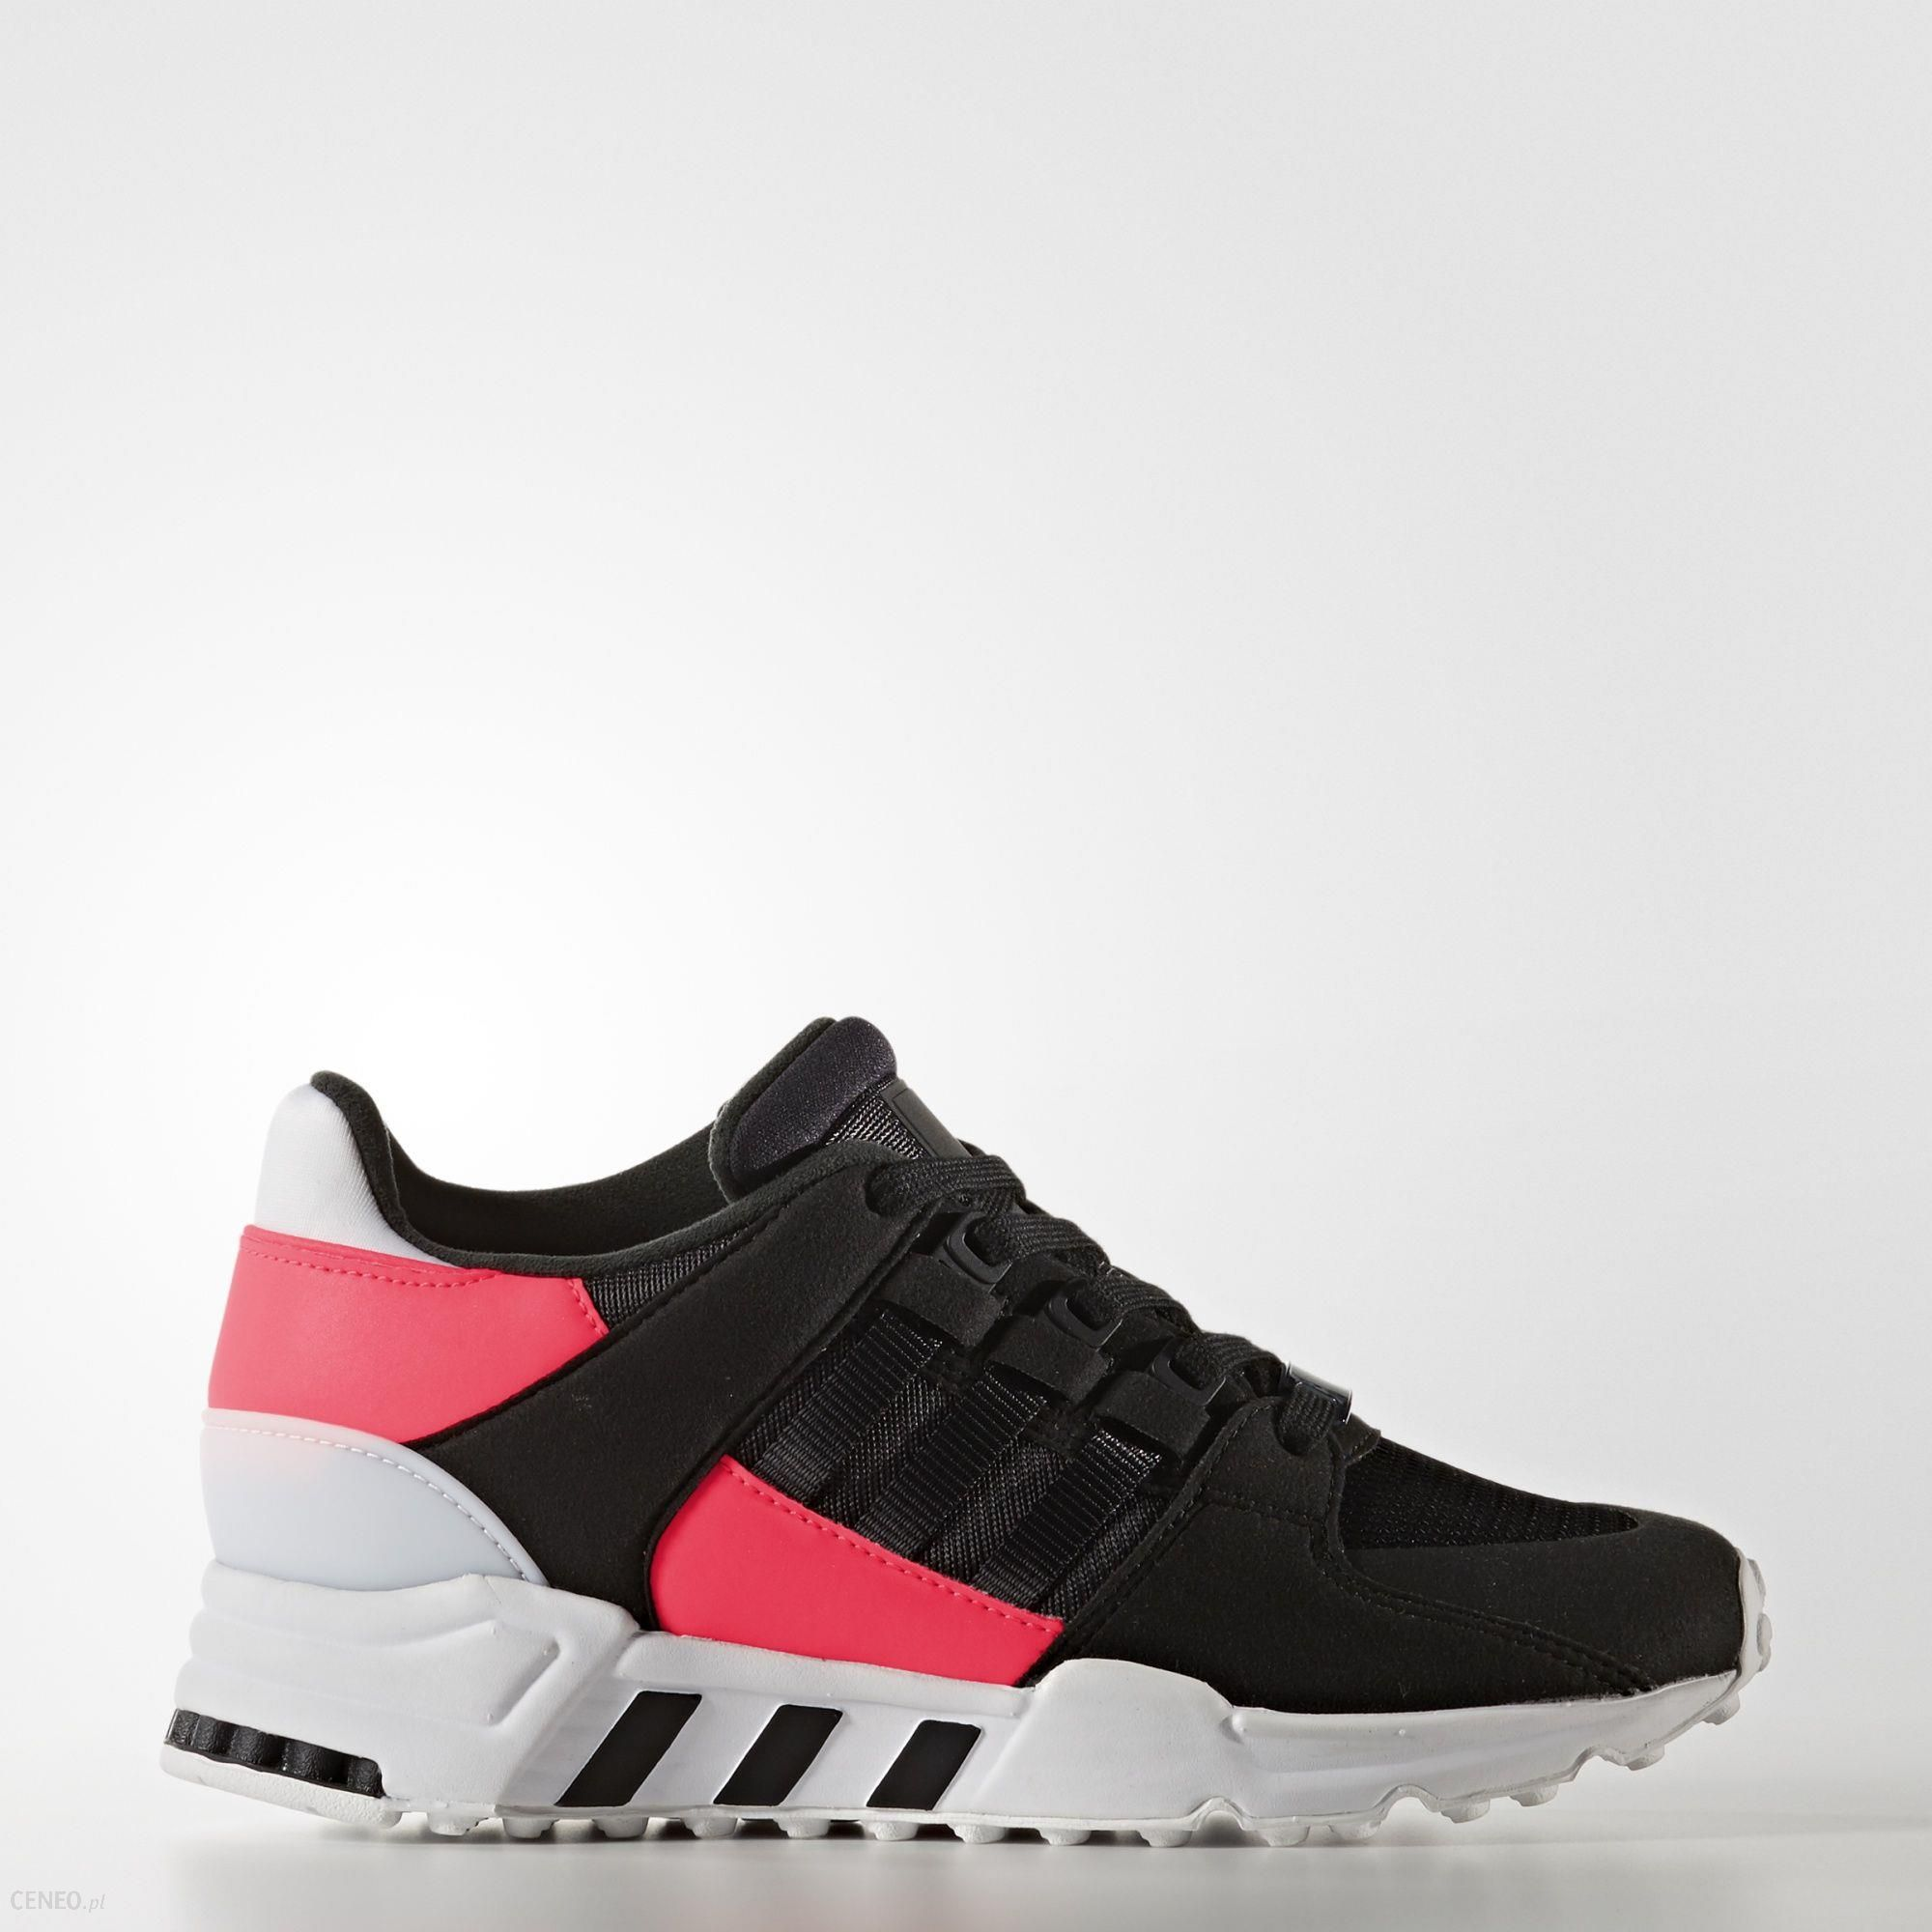 BUTY ADIDAS EQT RUNNING SUPPORT 93 Ceny i opinie Ceneo.pl